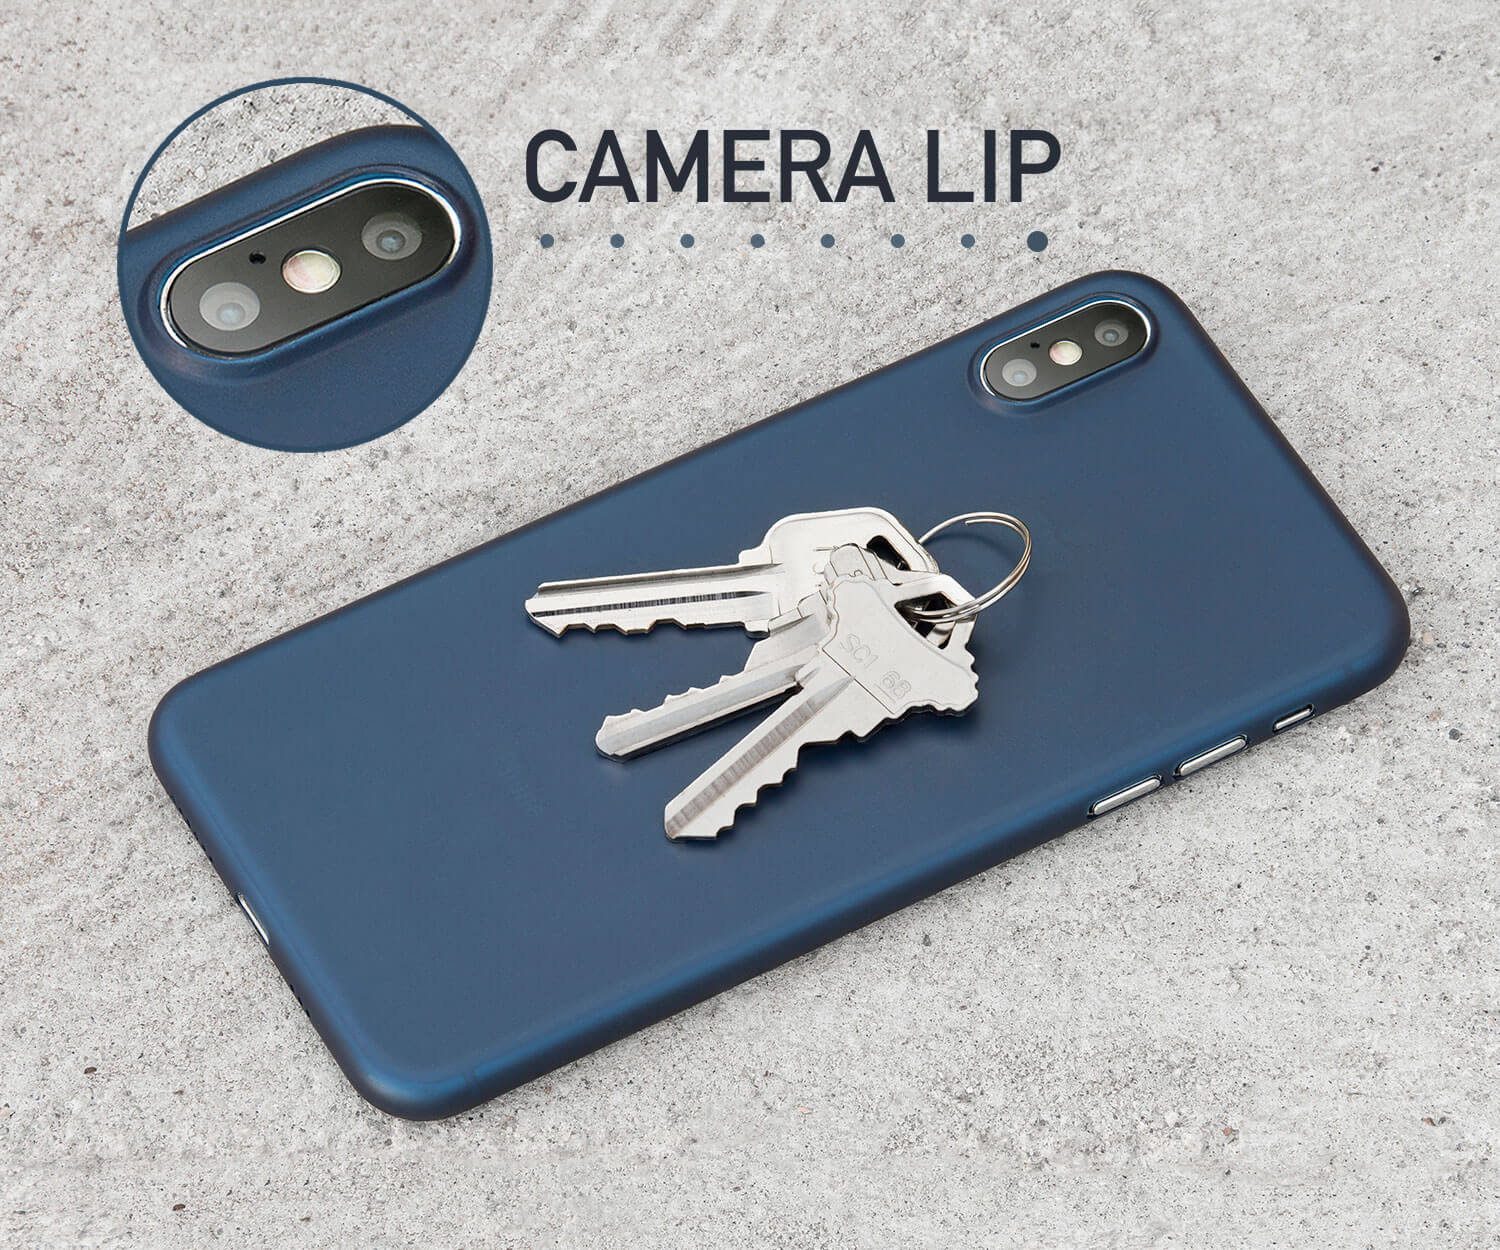 A thin iPhone XS case with a lip for camera protection